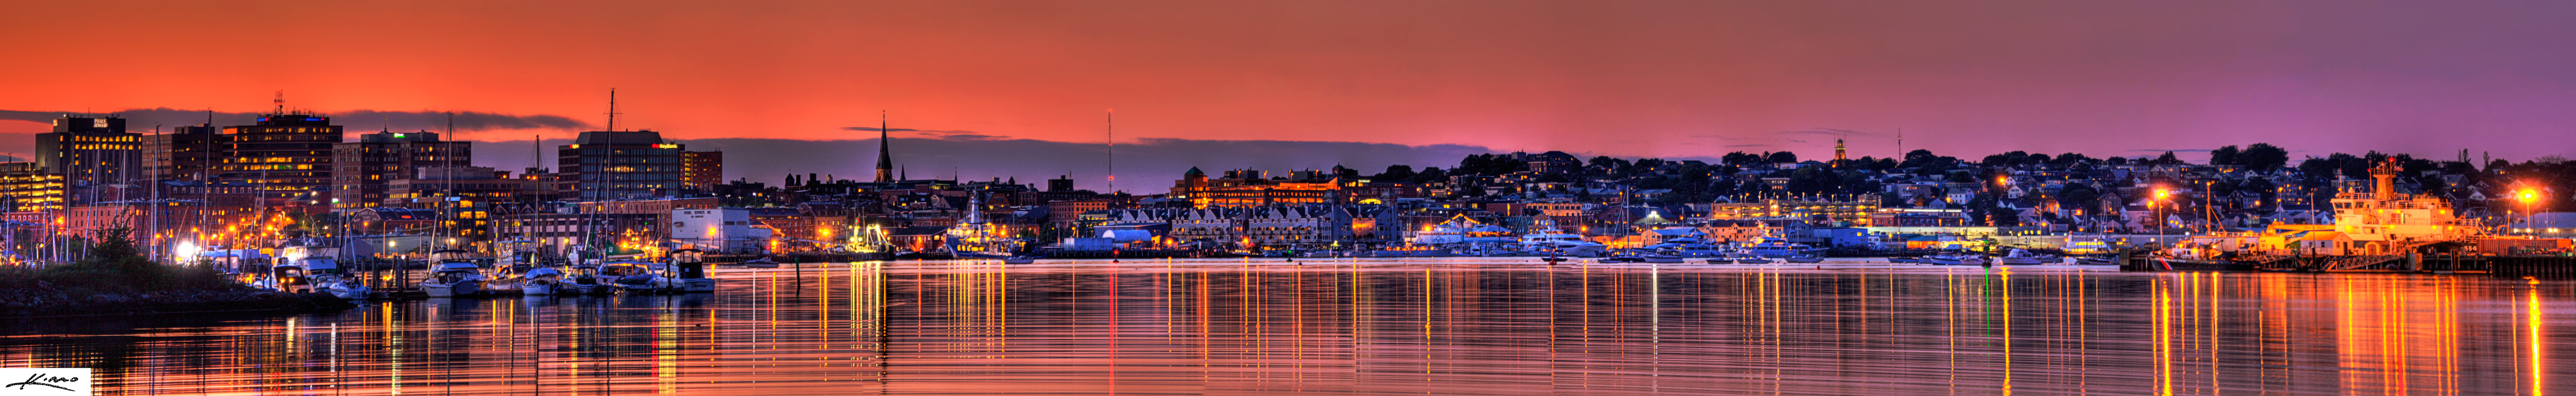 Portland Maine Cityscape Skyline at Sunset Panorama ...